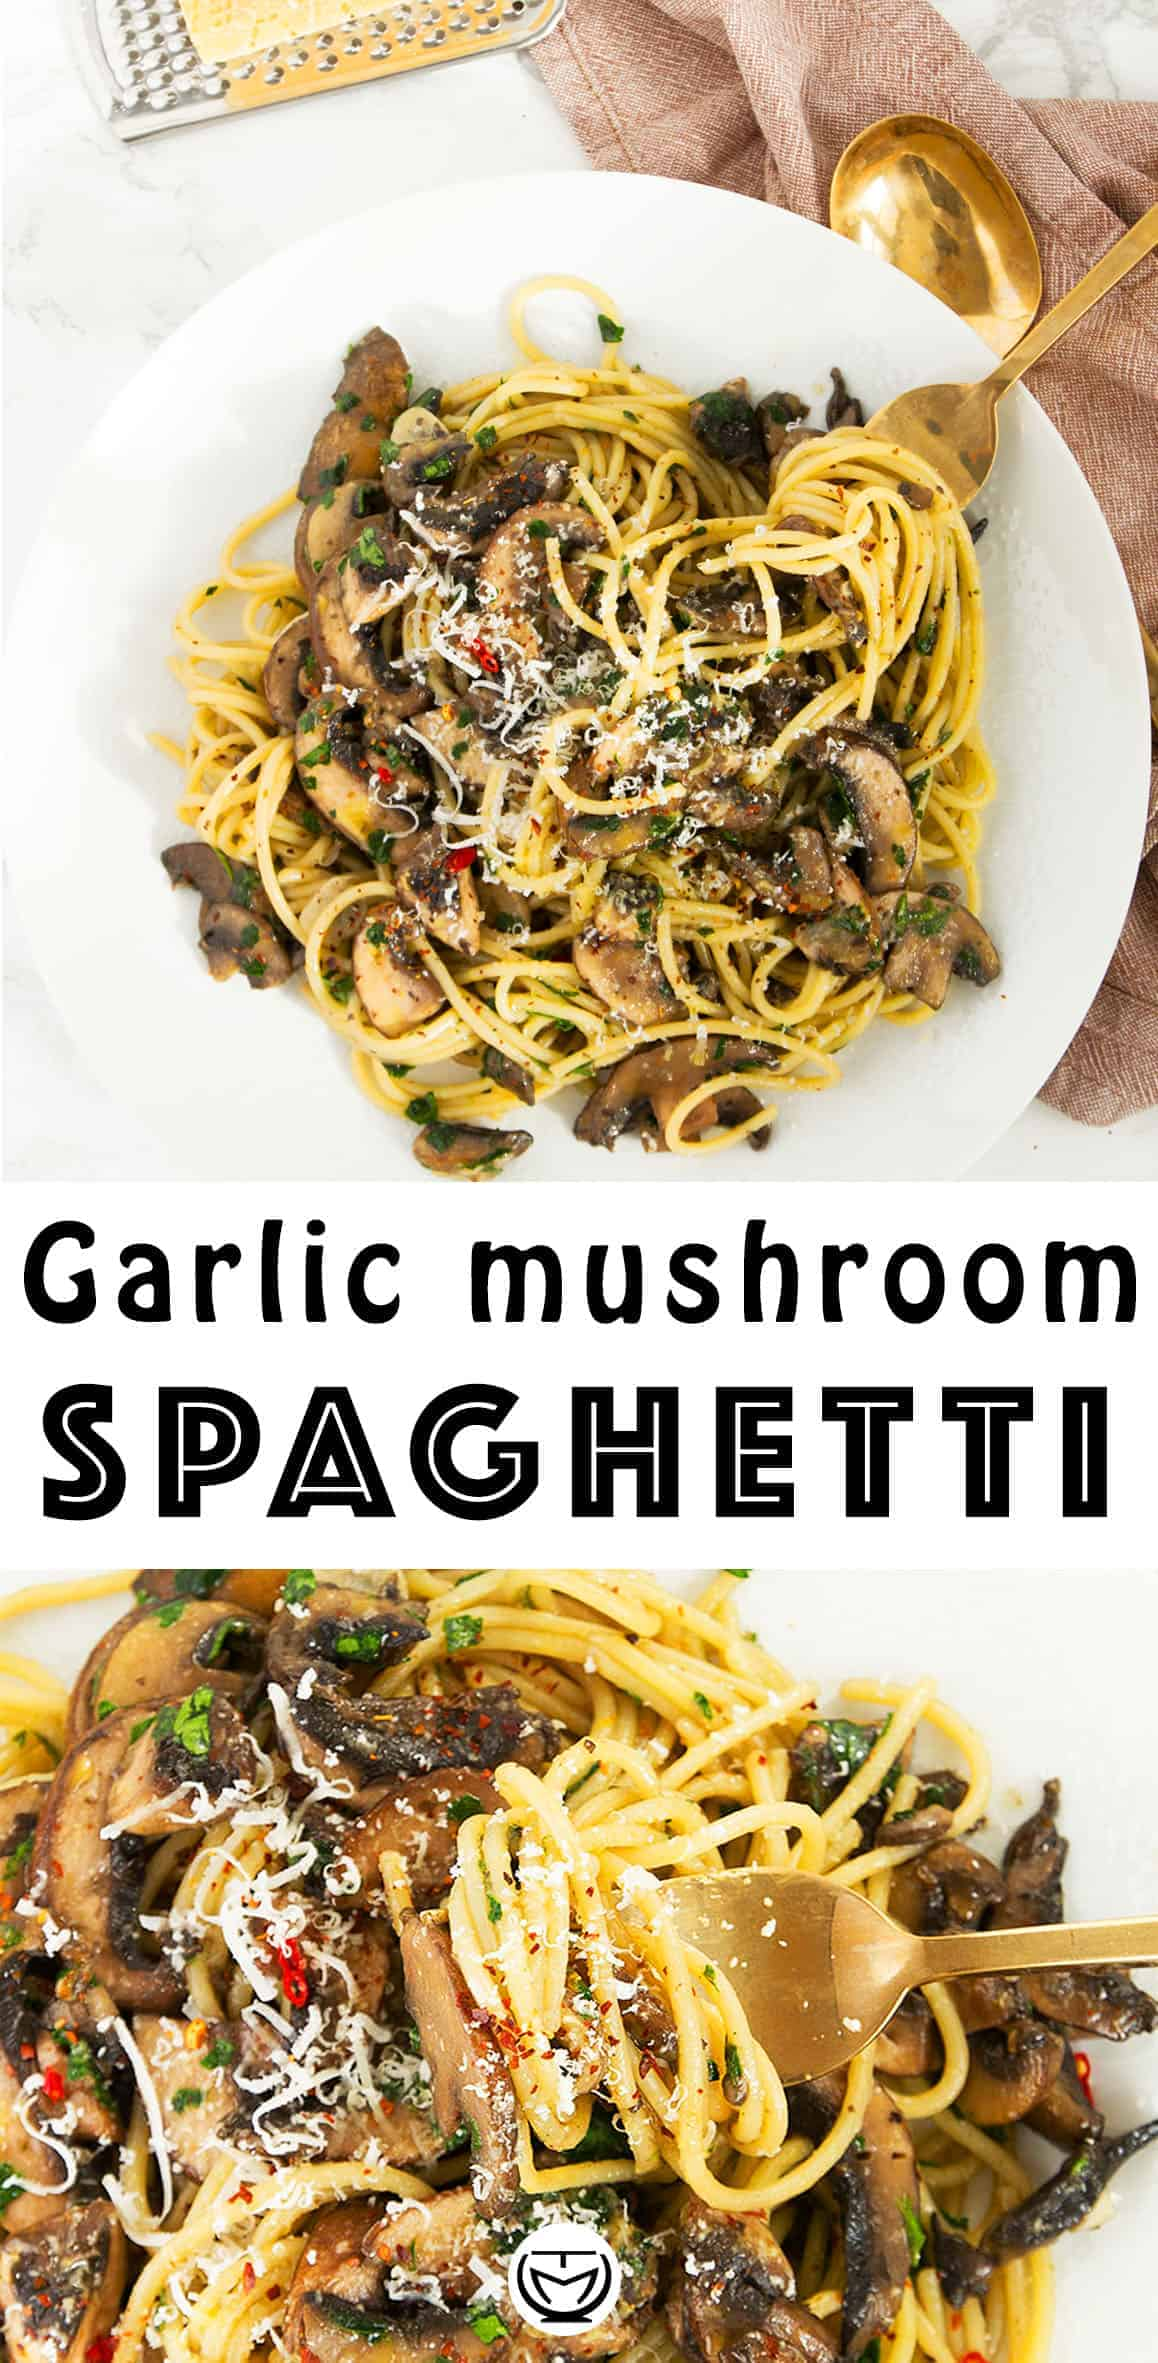 Everyone needs a good garlic mushroom pasta recipe in their back pocket for last minute dinners! It's packed with umami flavor and boosts your mood at the end of a long day, plus it's inexpensive, easy and healthy. #pastarecipes #easydinnerrecipes #cheapmeals #quickandeasydinnerrecipes #15minutemeals